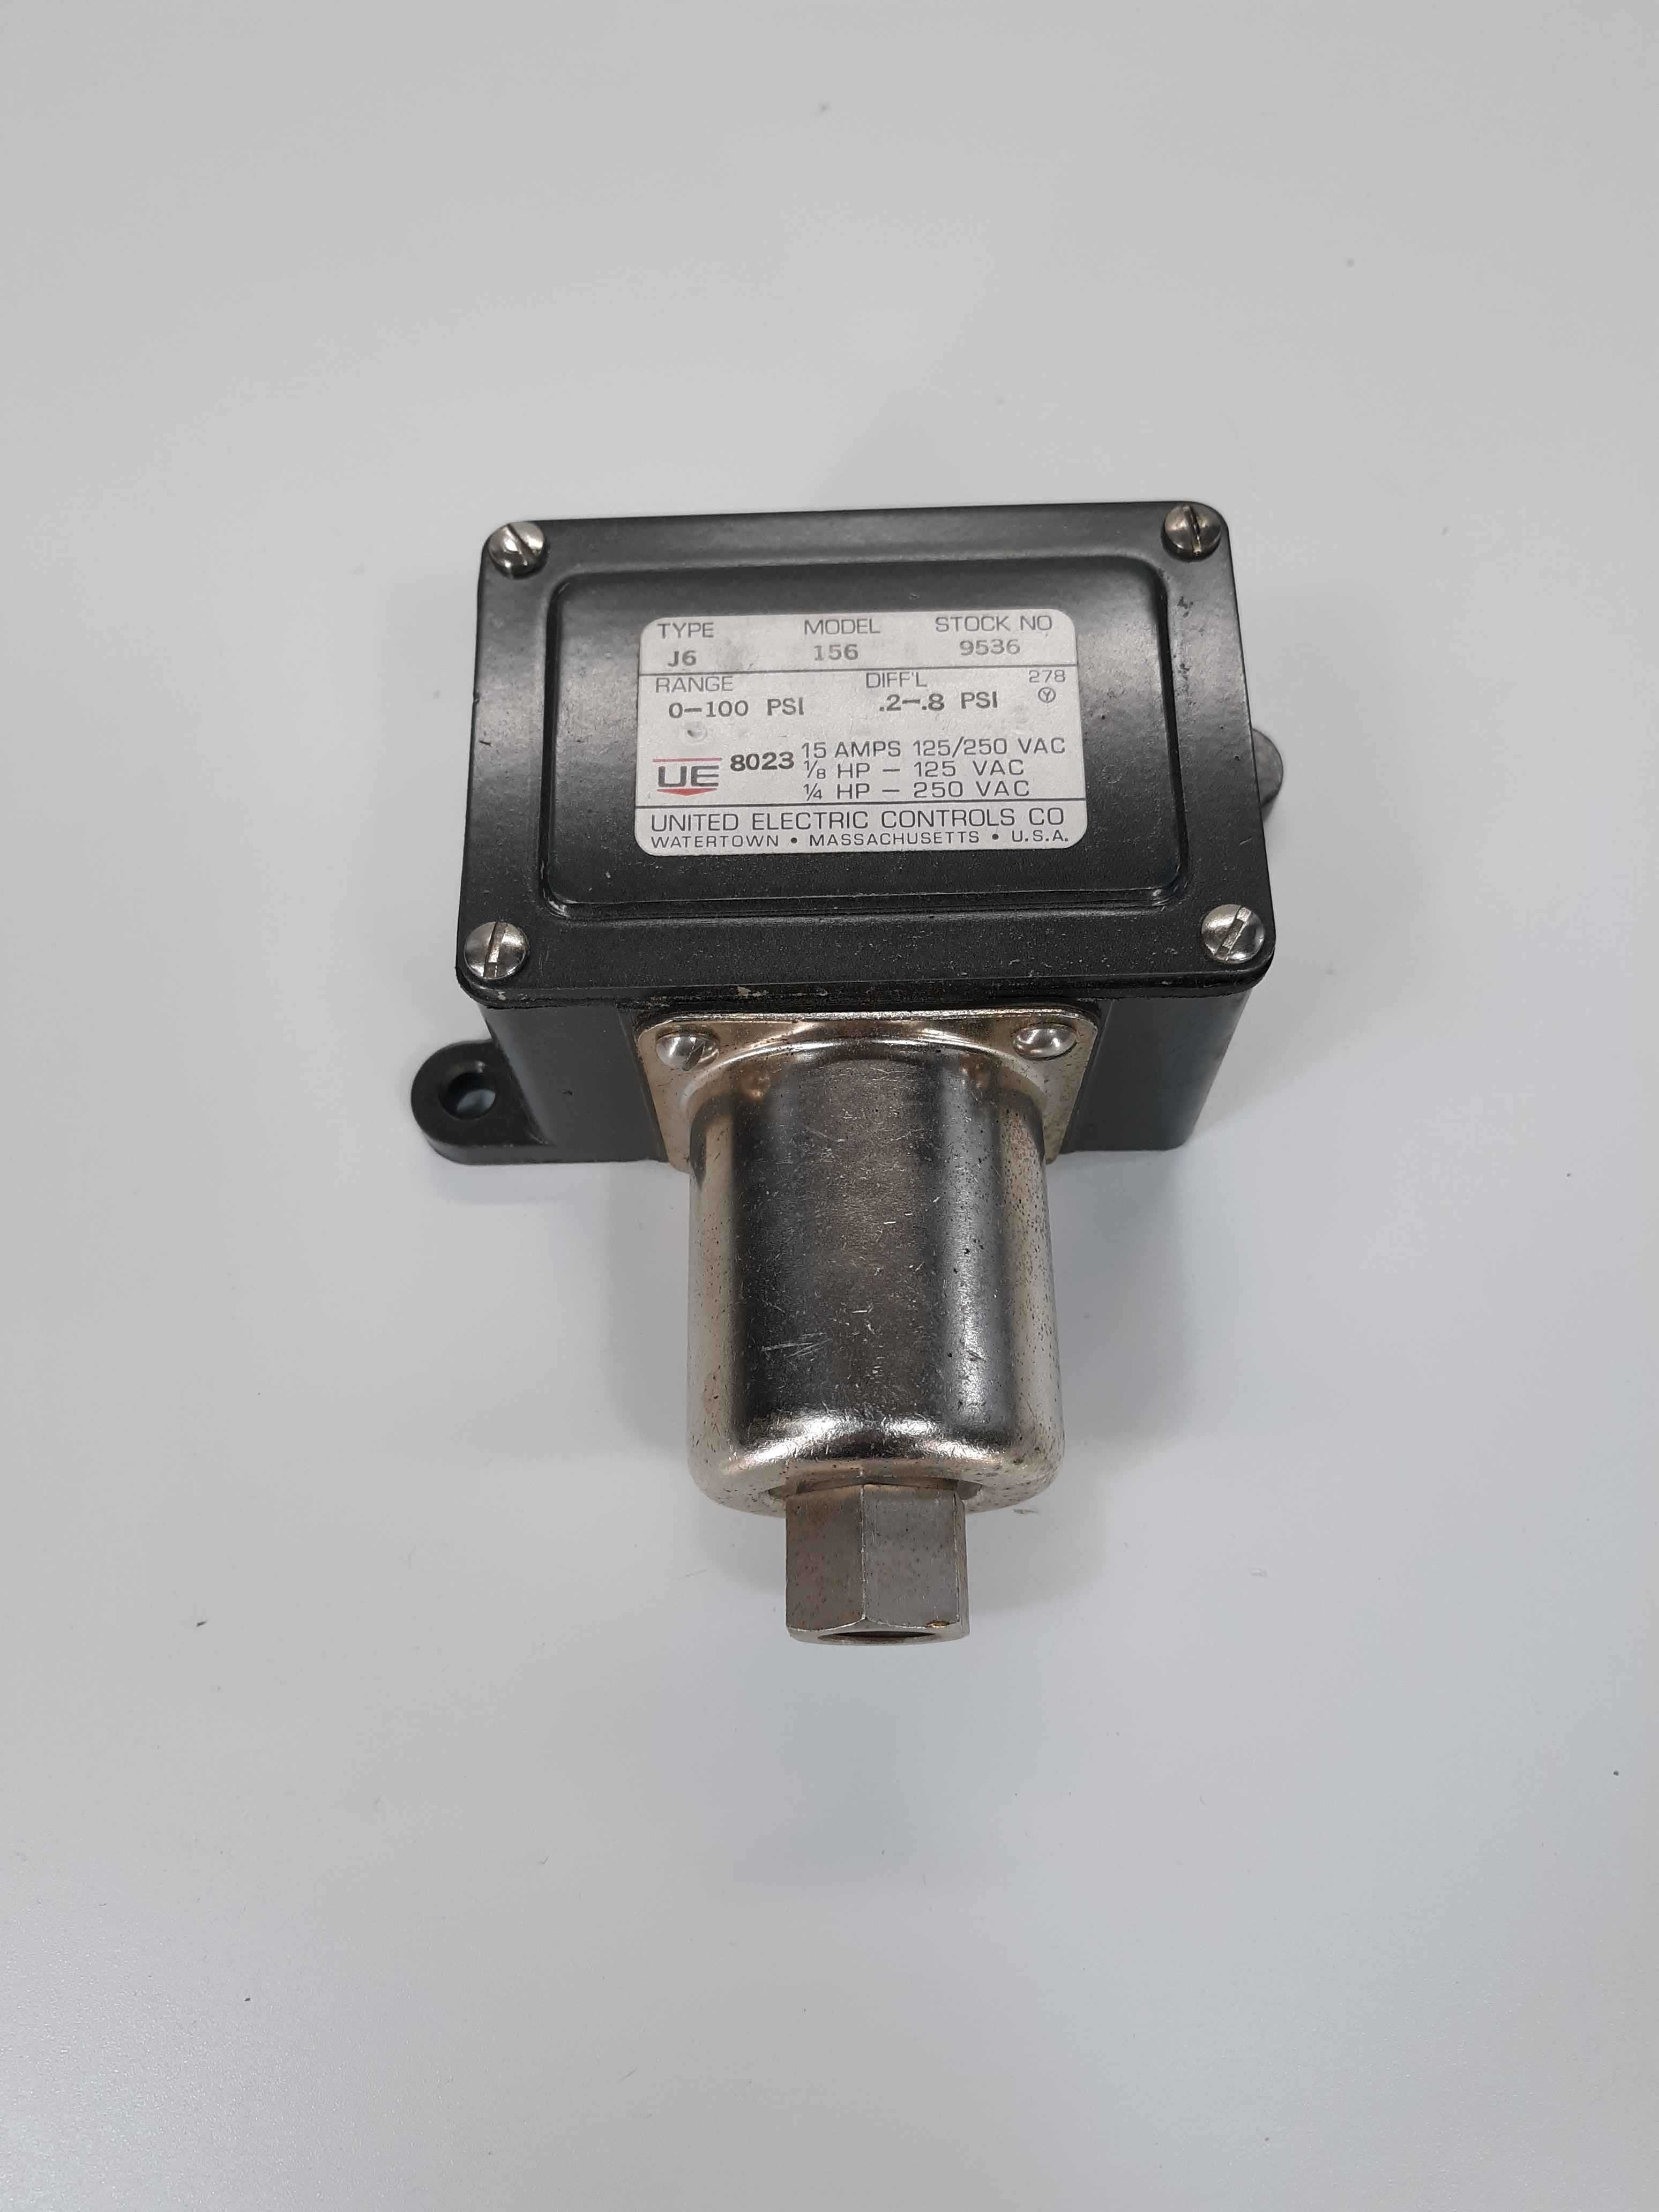 United Electric Controls Type J6 Model 156 Pressure Switch